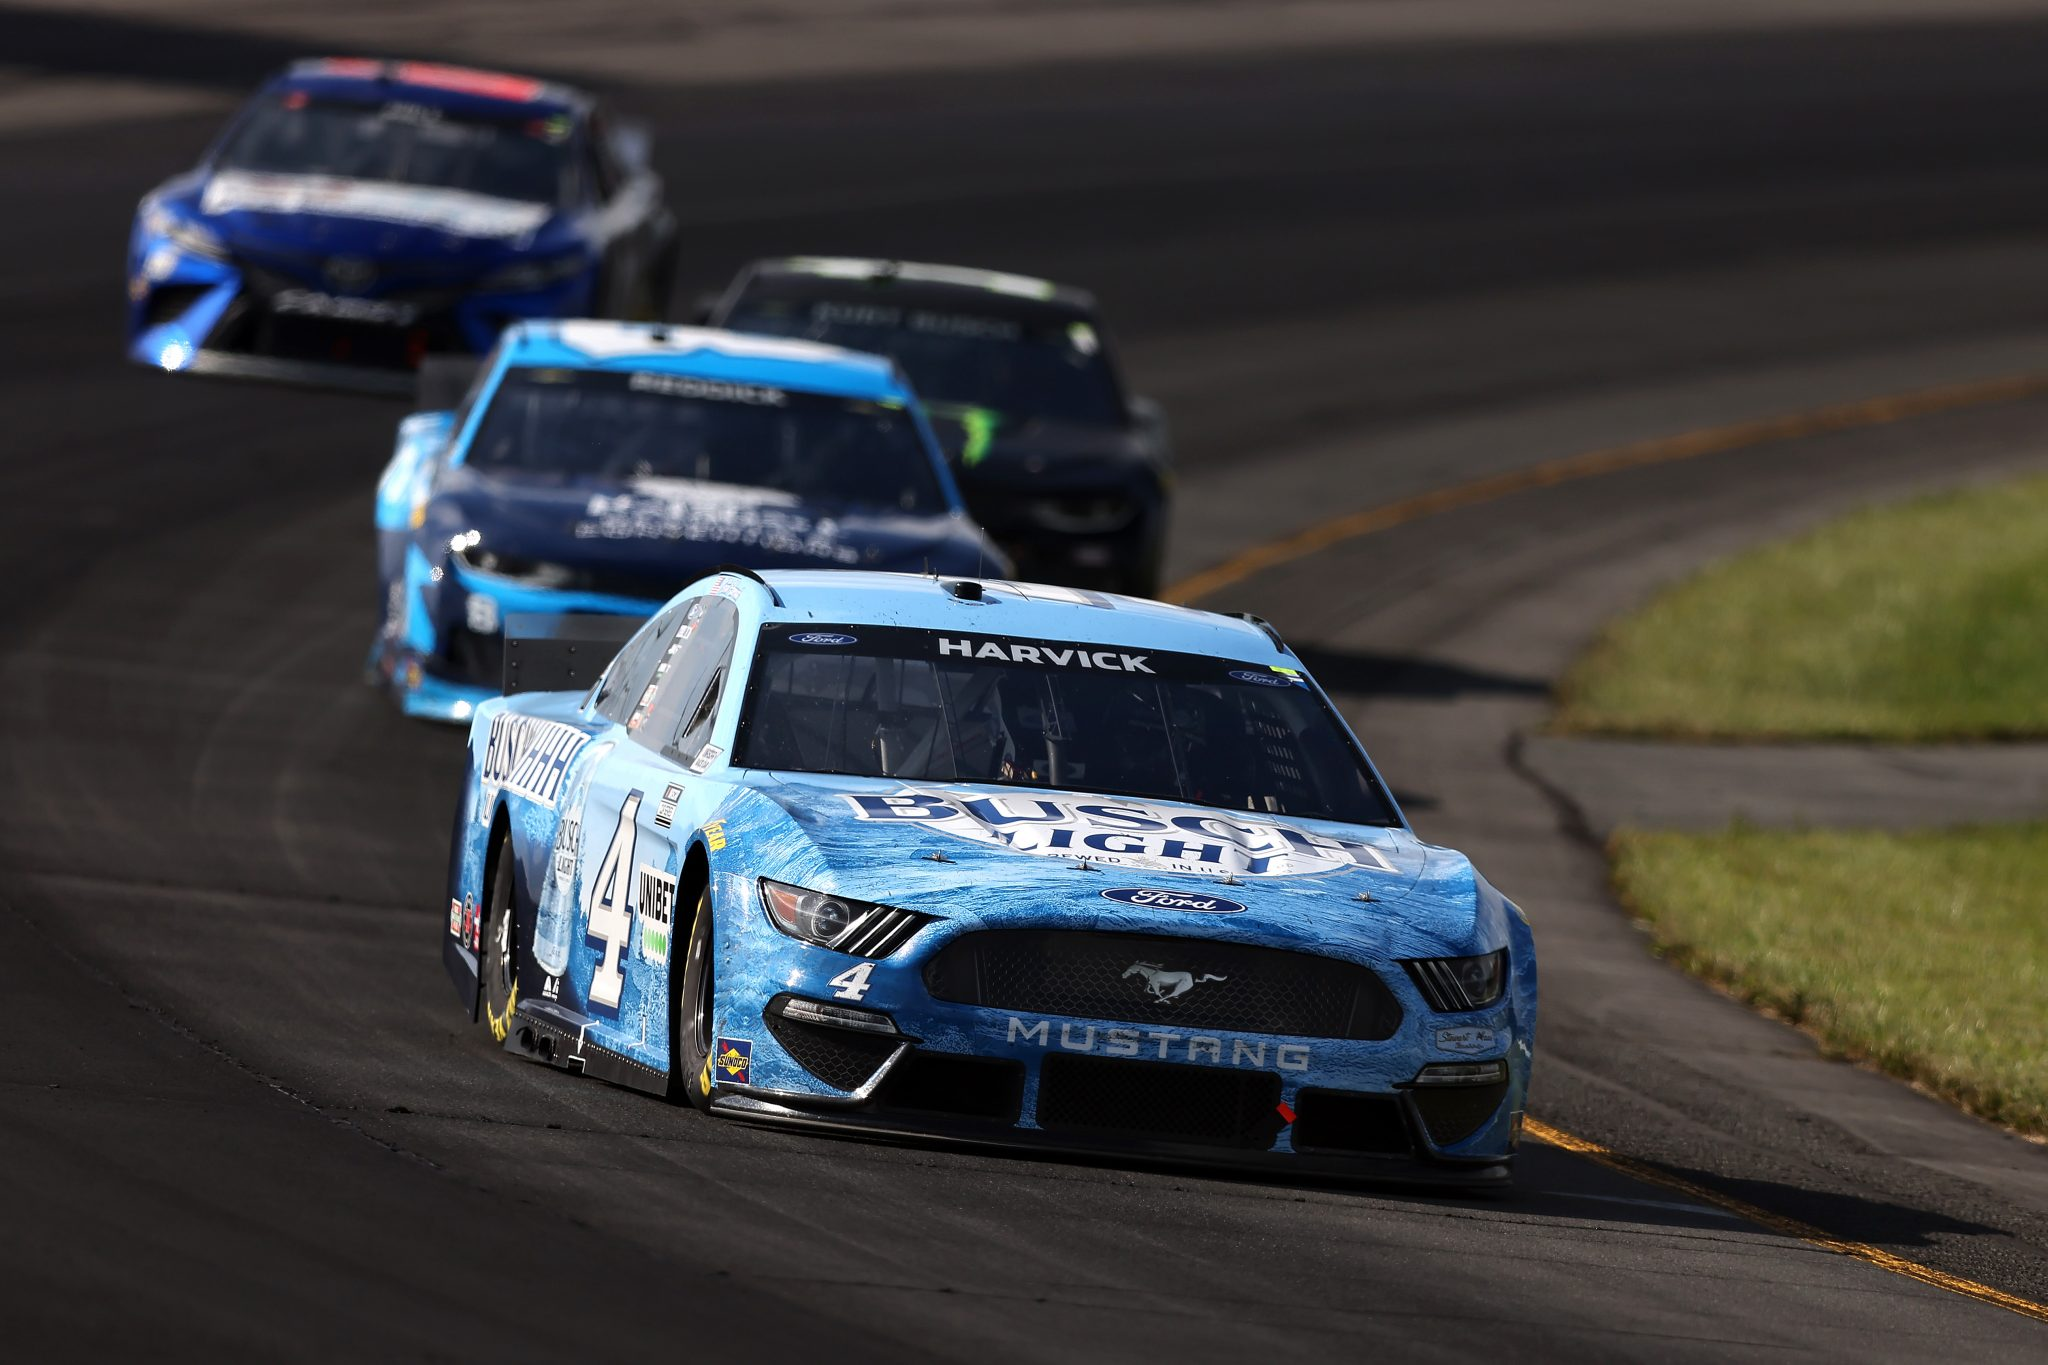 LONG POND, PENNSYLVANIA - JUNE 27: Kevin Harvick, driver of the #4 Busch Light Ford, drives during the NASCAR Cup Series Explore the Pocono Mountains 350 at Pocono Raceway on June 27, 2021 in Long Pond, Pennsylvania. (Photo by James Gilbert/Getty Images) | Getty Images